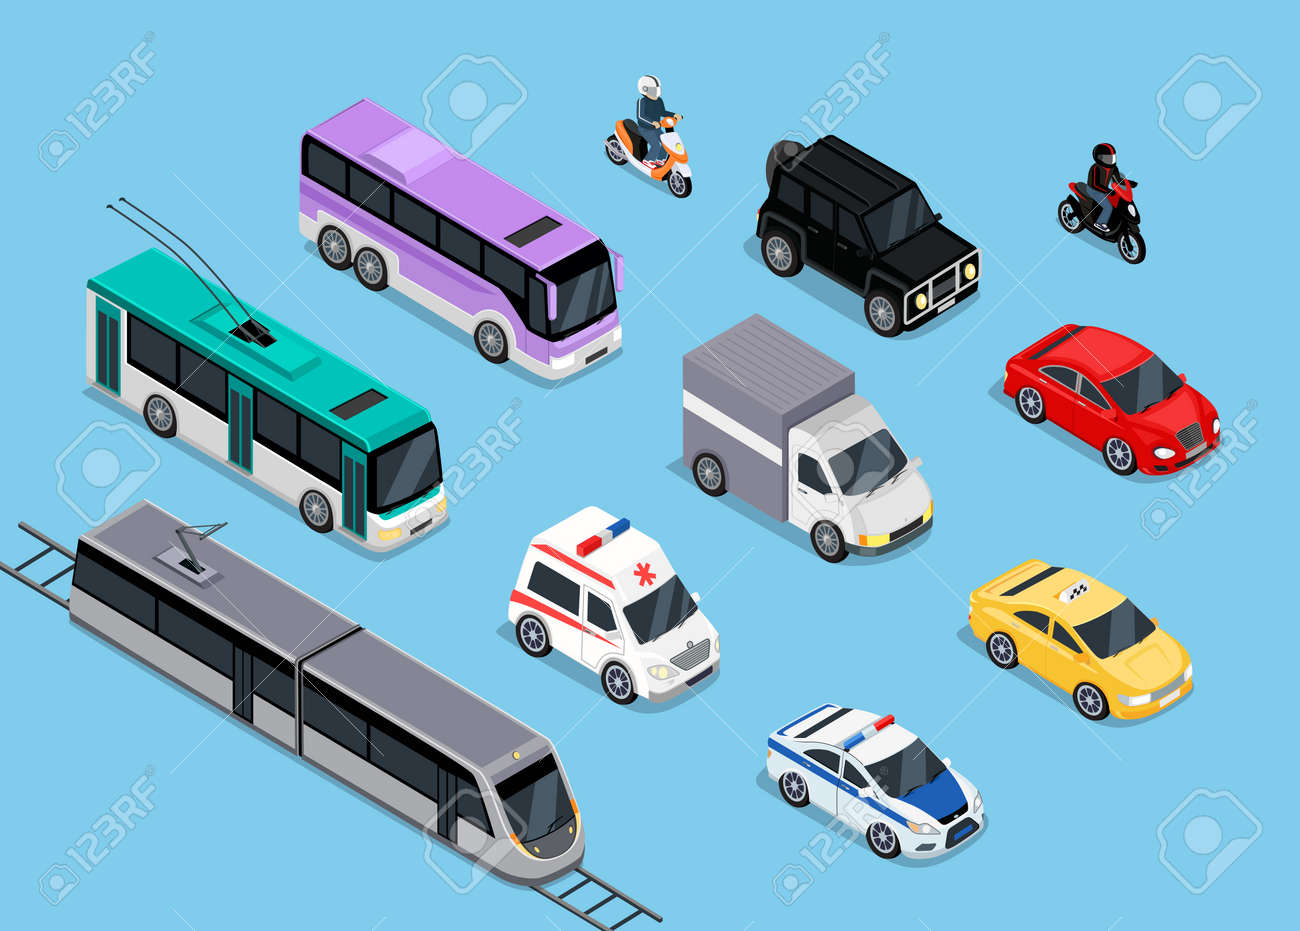 Isometric 3d transport set flat design. Car vehicle, transportation traffic, truck van, auto cargo, bus and automobile, police and motorcycle illustration - 50867574